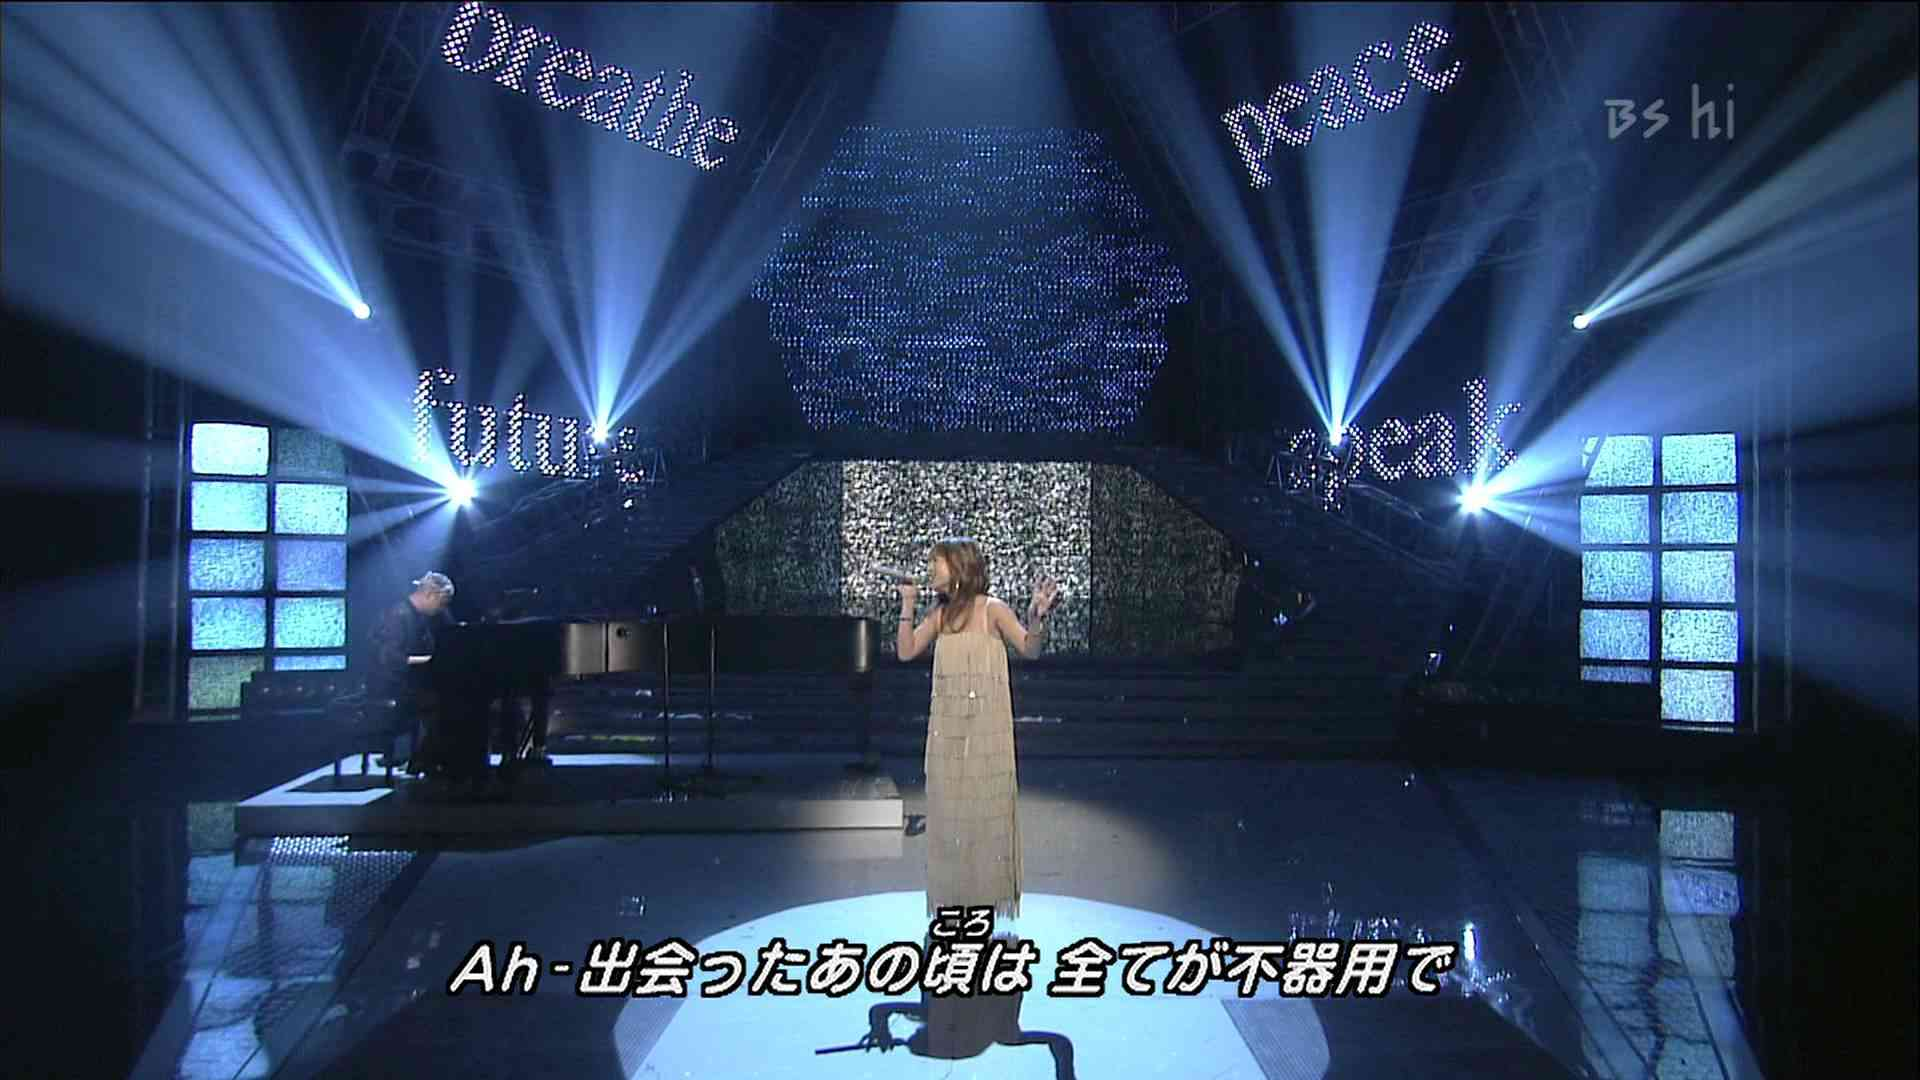 浜崎あゆみ • Dearest - YouTube